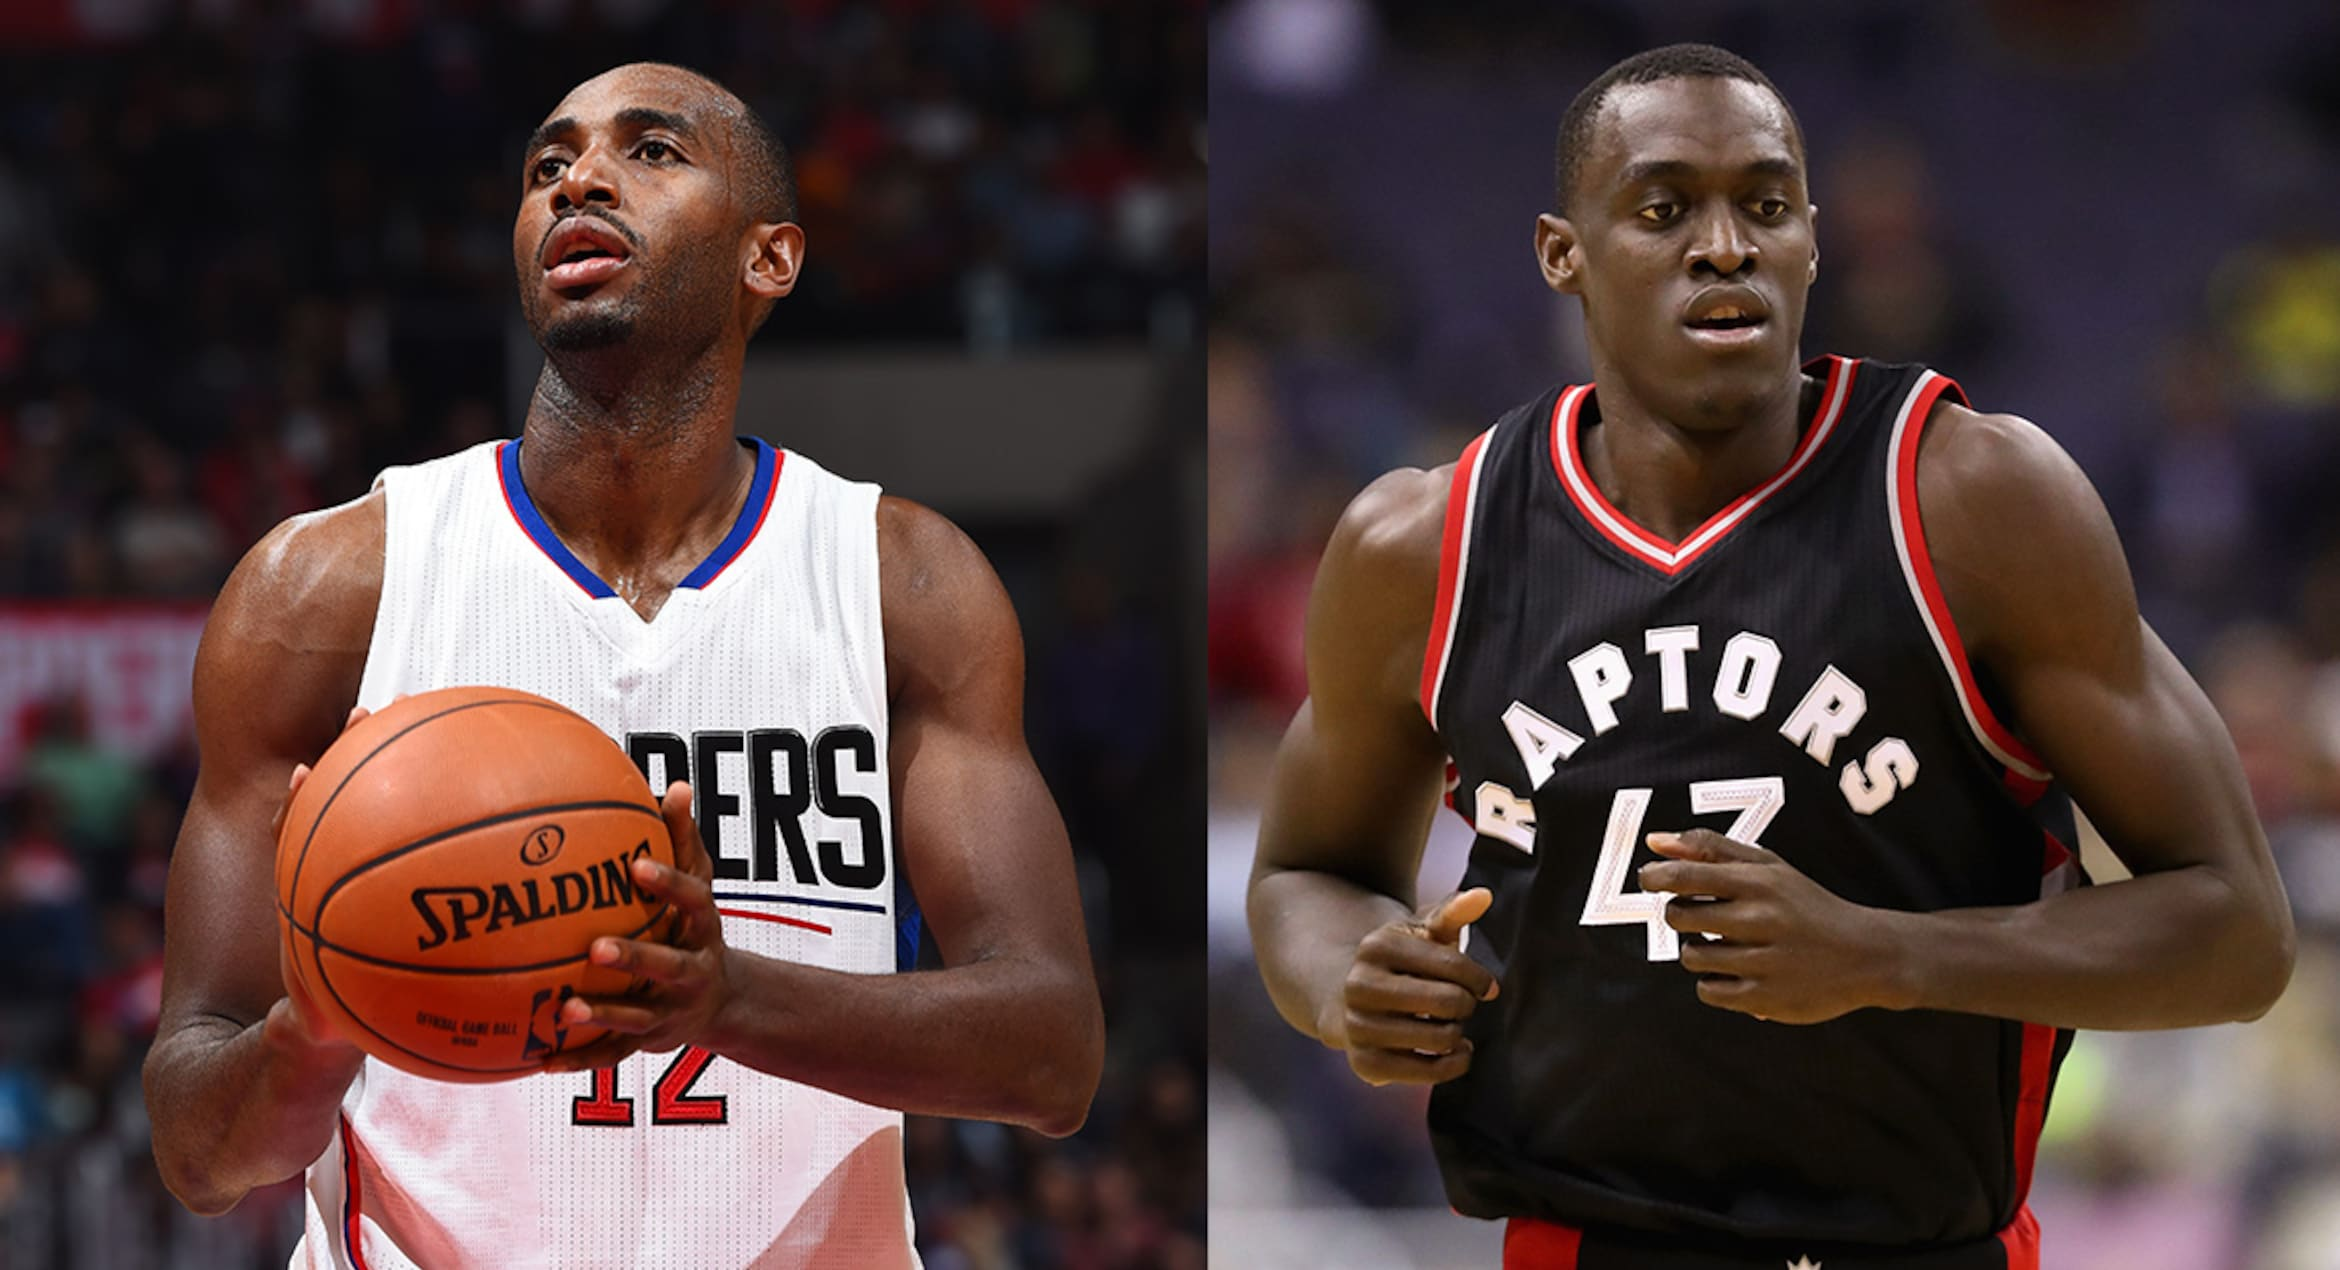 Luc Mbah a Moute and Pascal Siakam